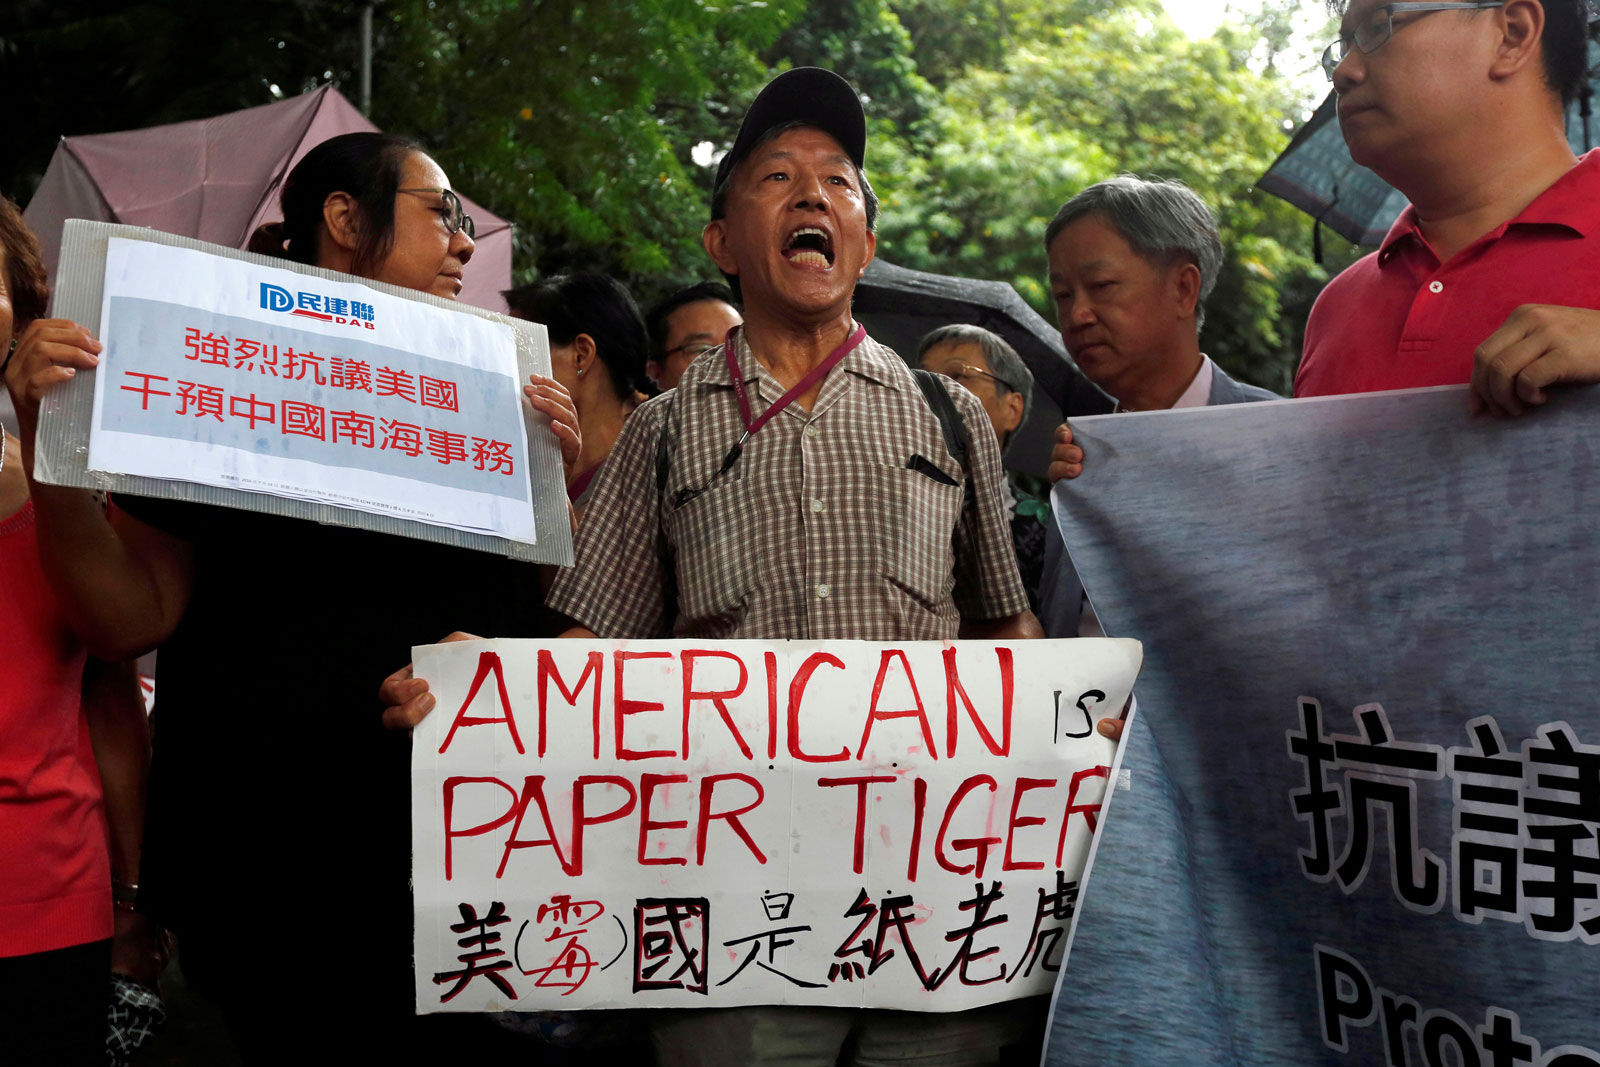 Chinese protesters outside the US Consulate in Hong Kong, following an international court ruling against China's claims to the South China Sea, Hong Kong, China, July 14, 2016